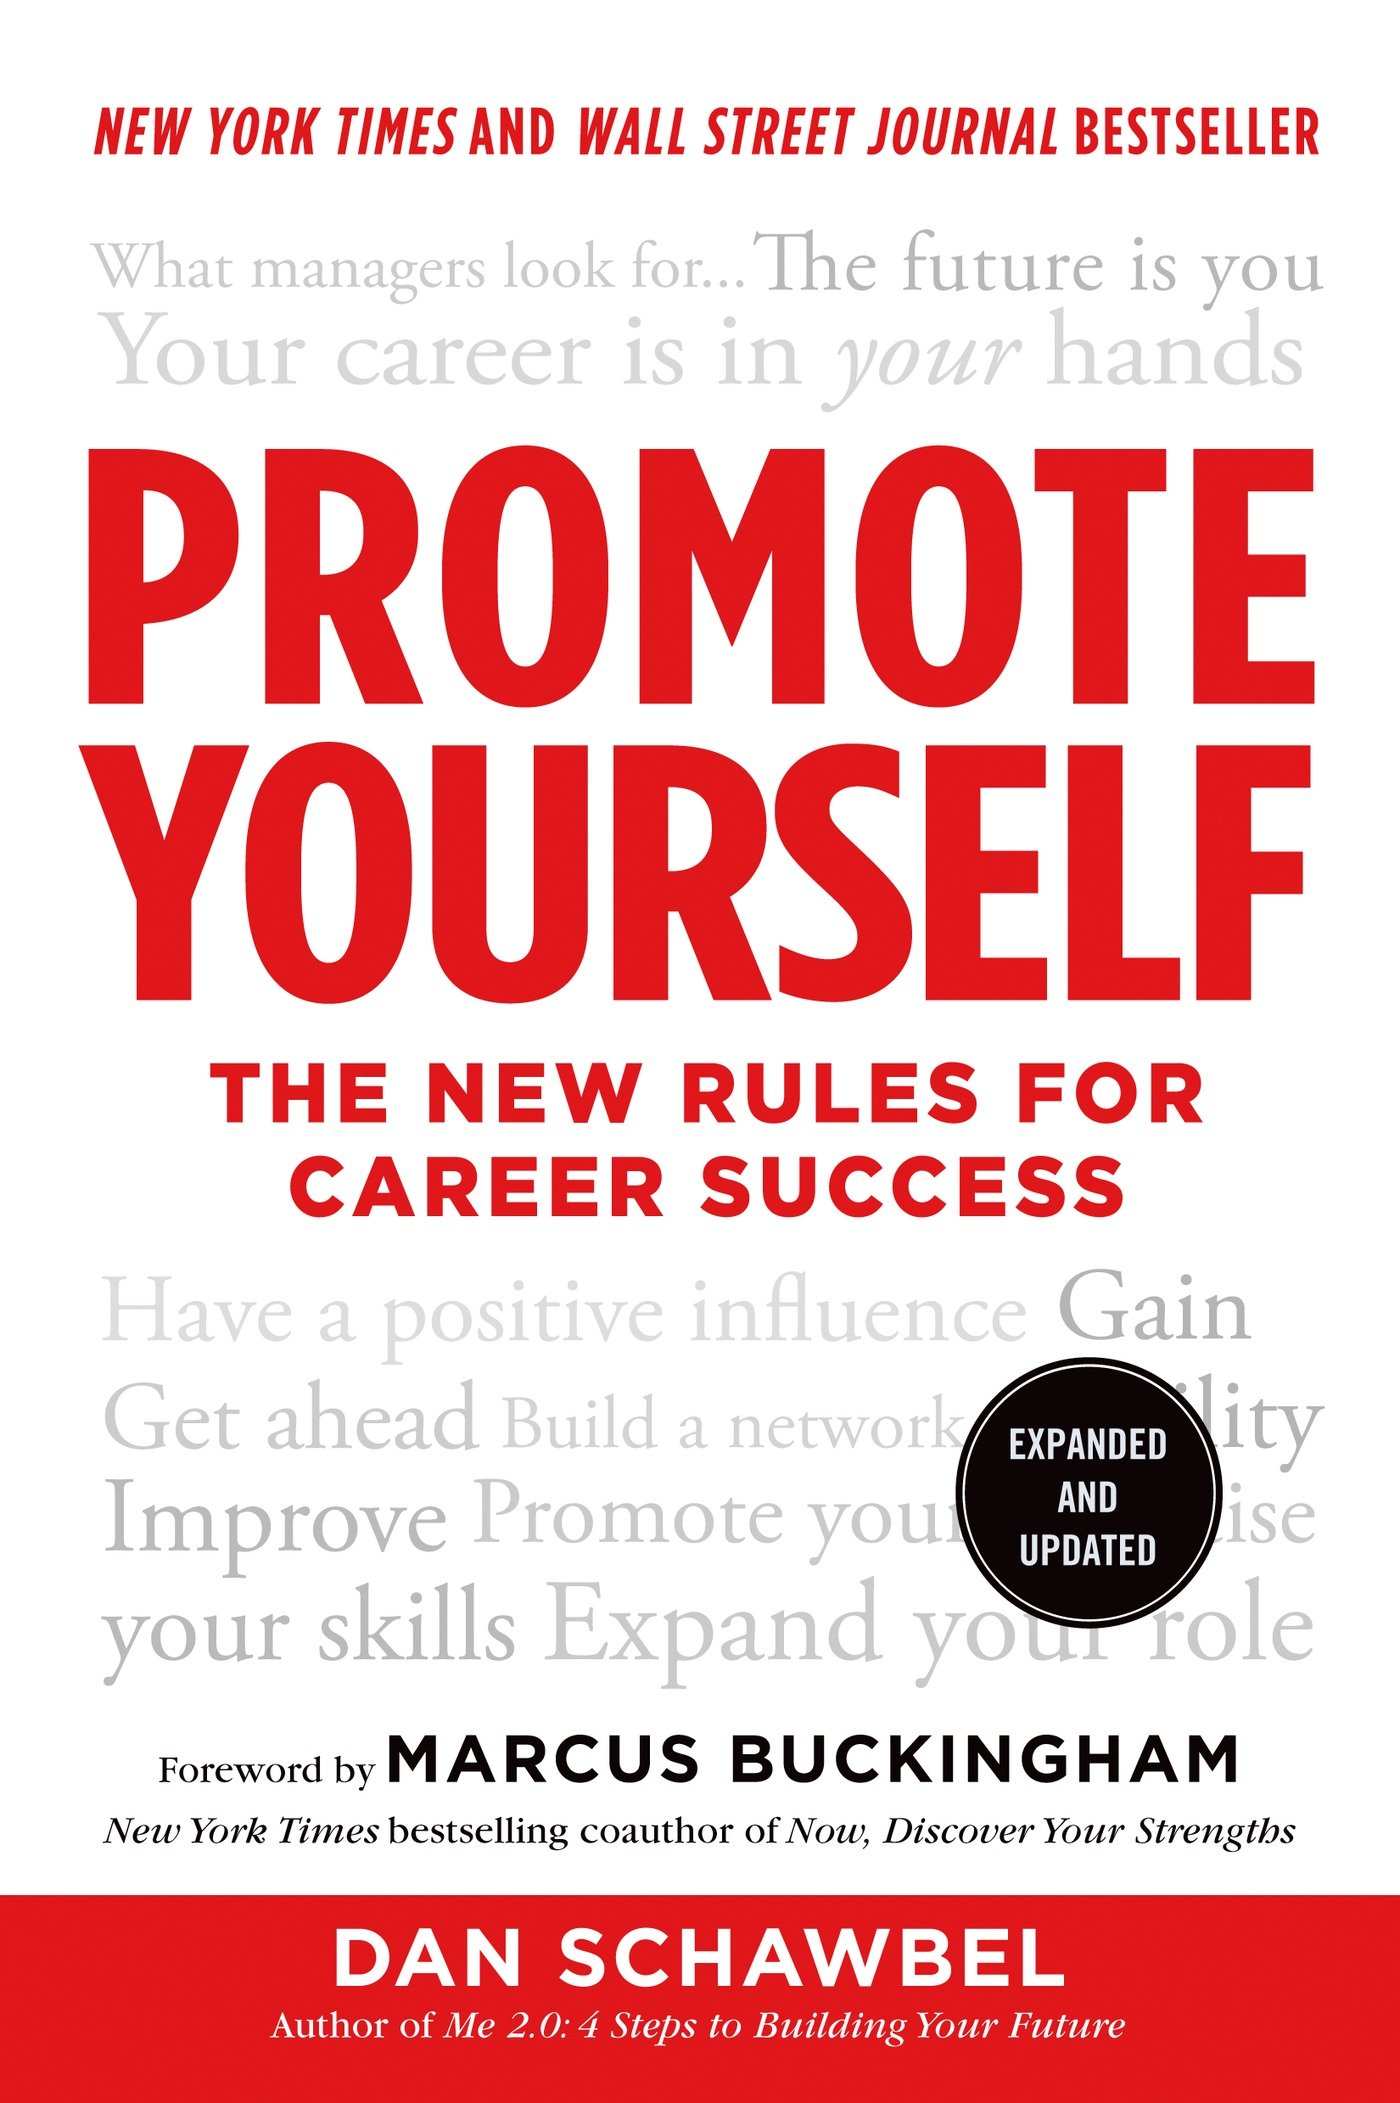 promote yourself the new rules for career success dan schawbel promote yourself the new rules for career success dan schawbel marcus buckingham 9781250025685 com books